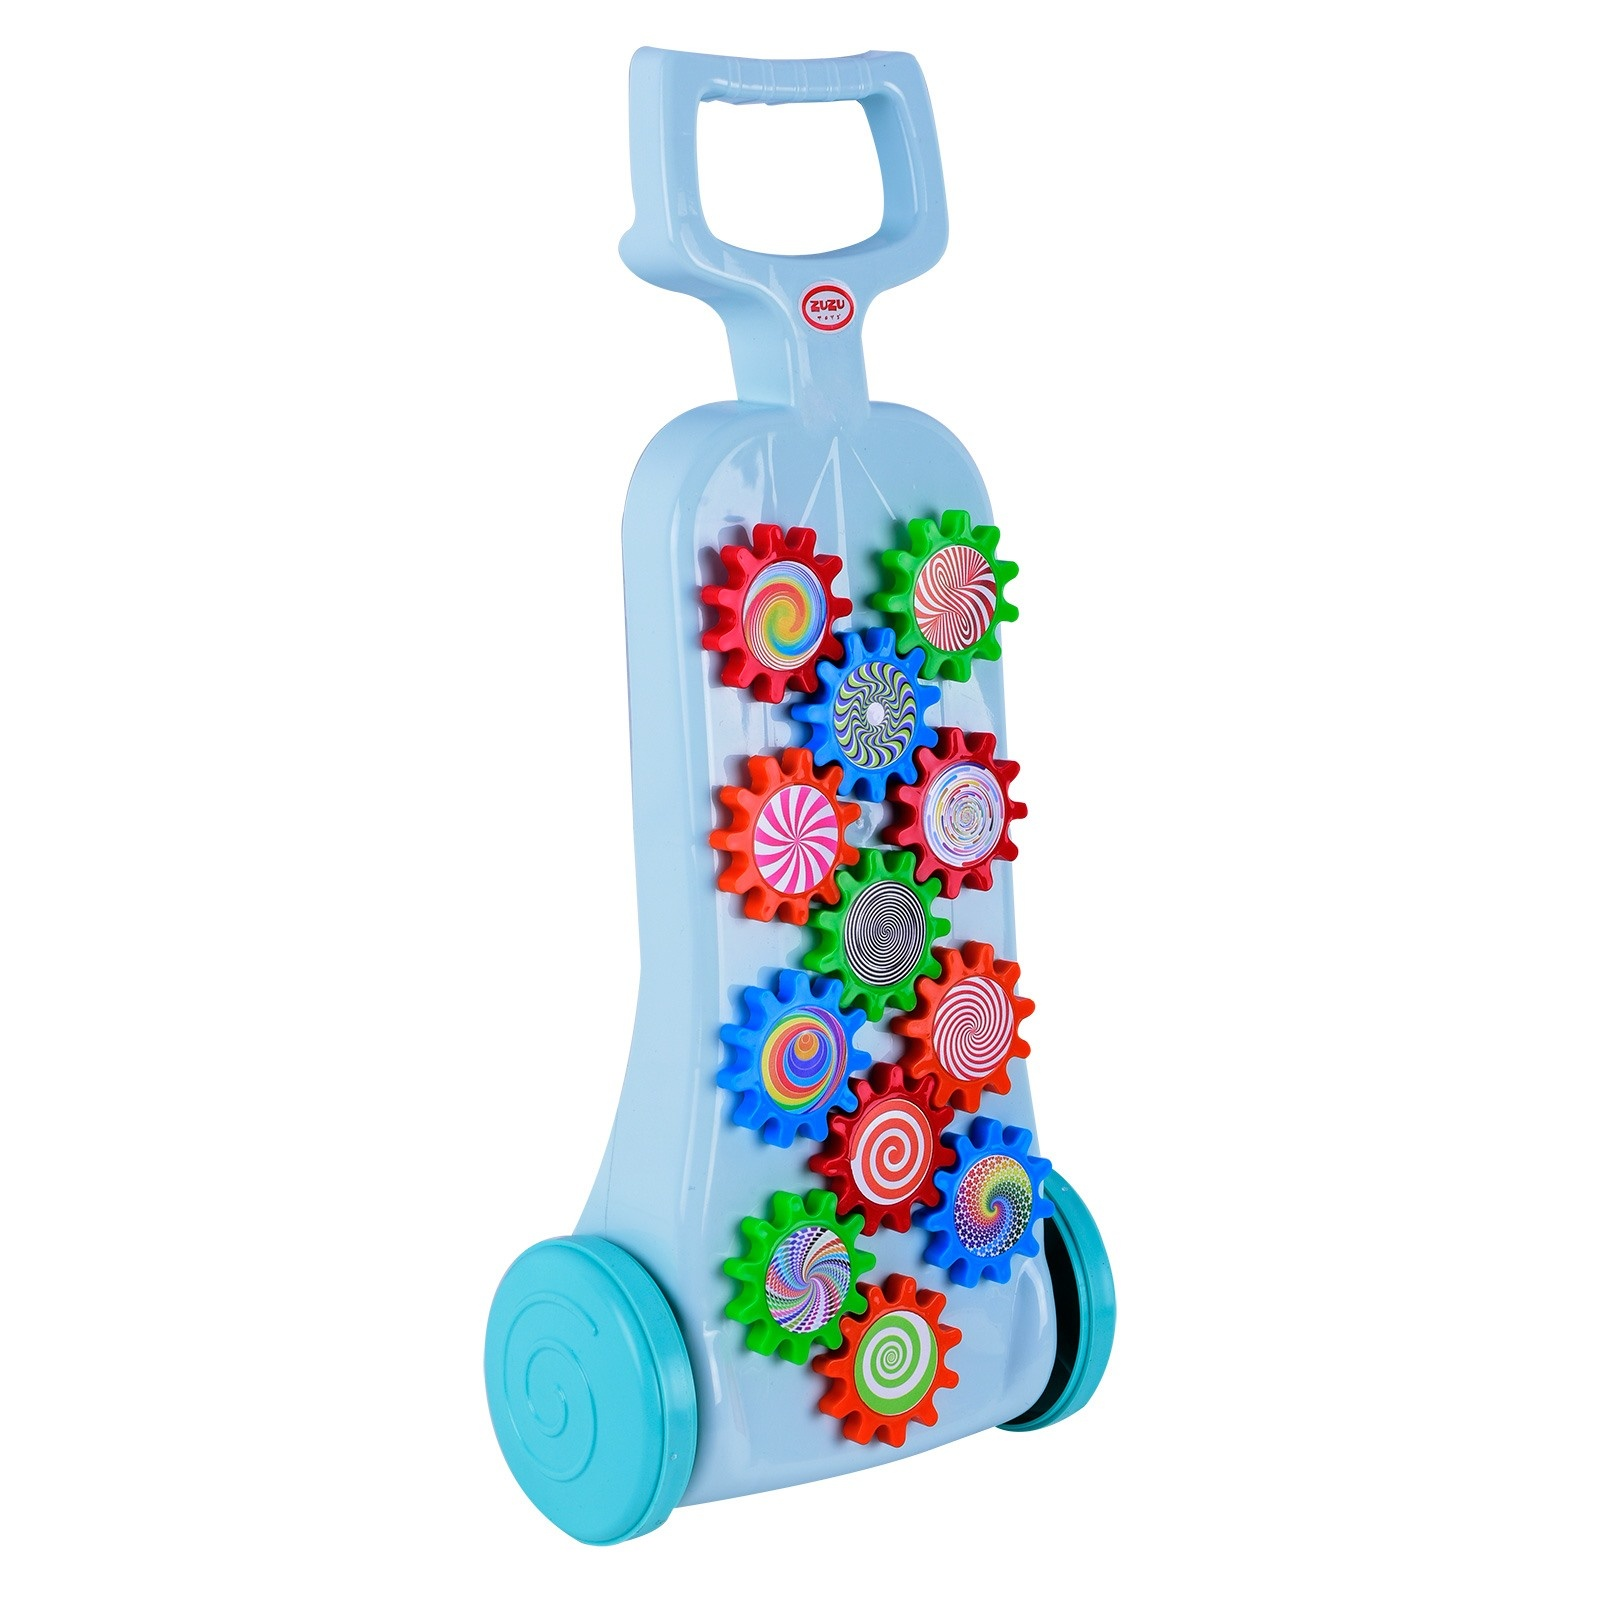 Ebebek Zuzu Cutey Cogwheel My Walking Friend 12 Month+